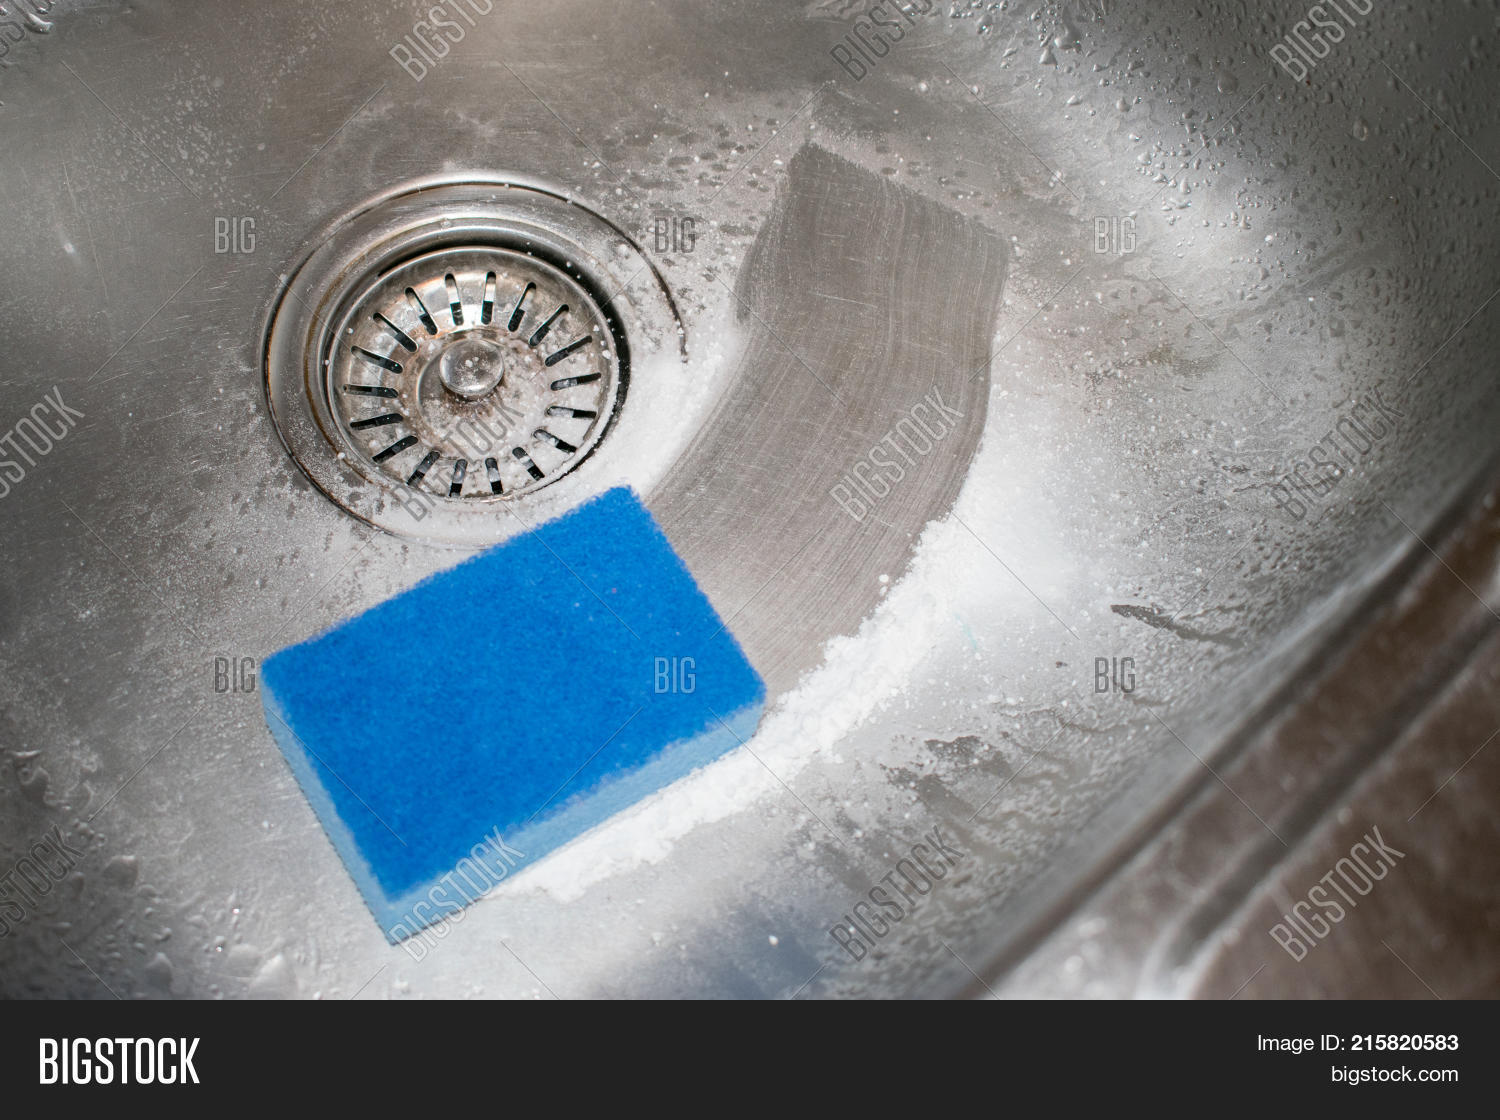 Cleaning Kitchen Sink. How To Clean The Stainless Steel Sink With Cleanser  And Washcloth.